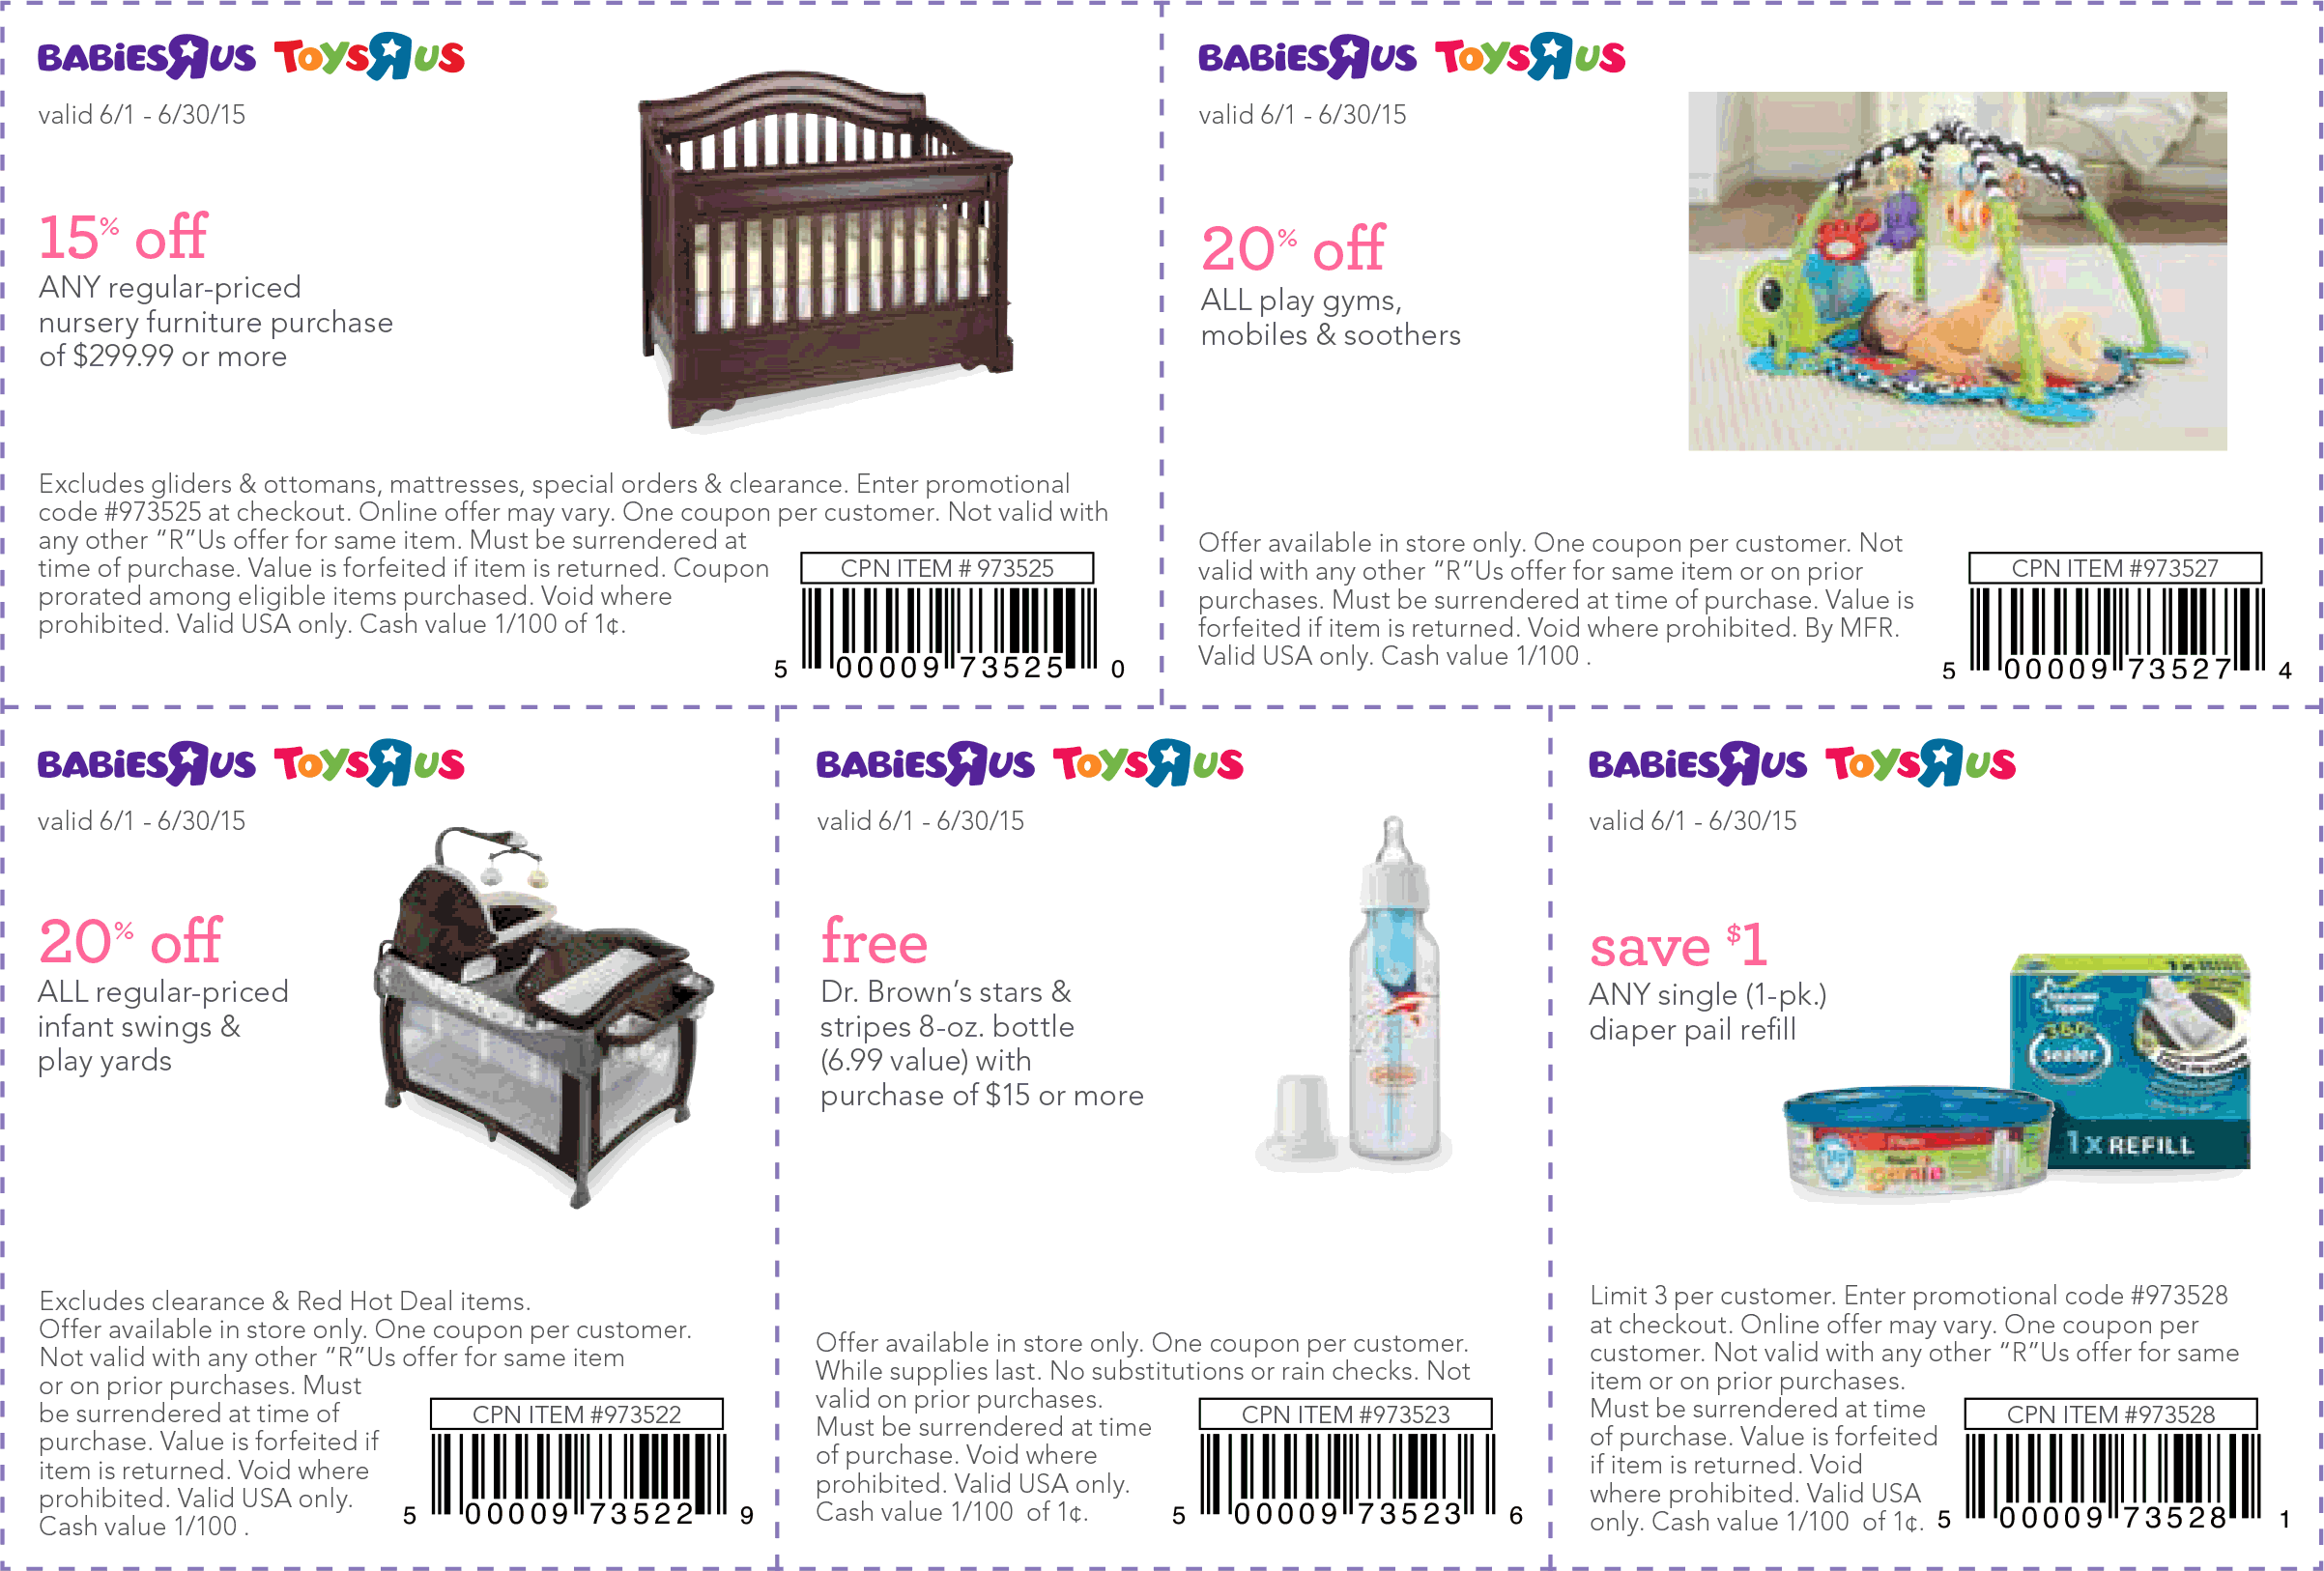 Babies R Us Coupon April 2019 15% off various baby items & furniture at Babies R Us & Toys R Us, or online via promo code 973525